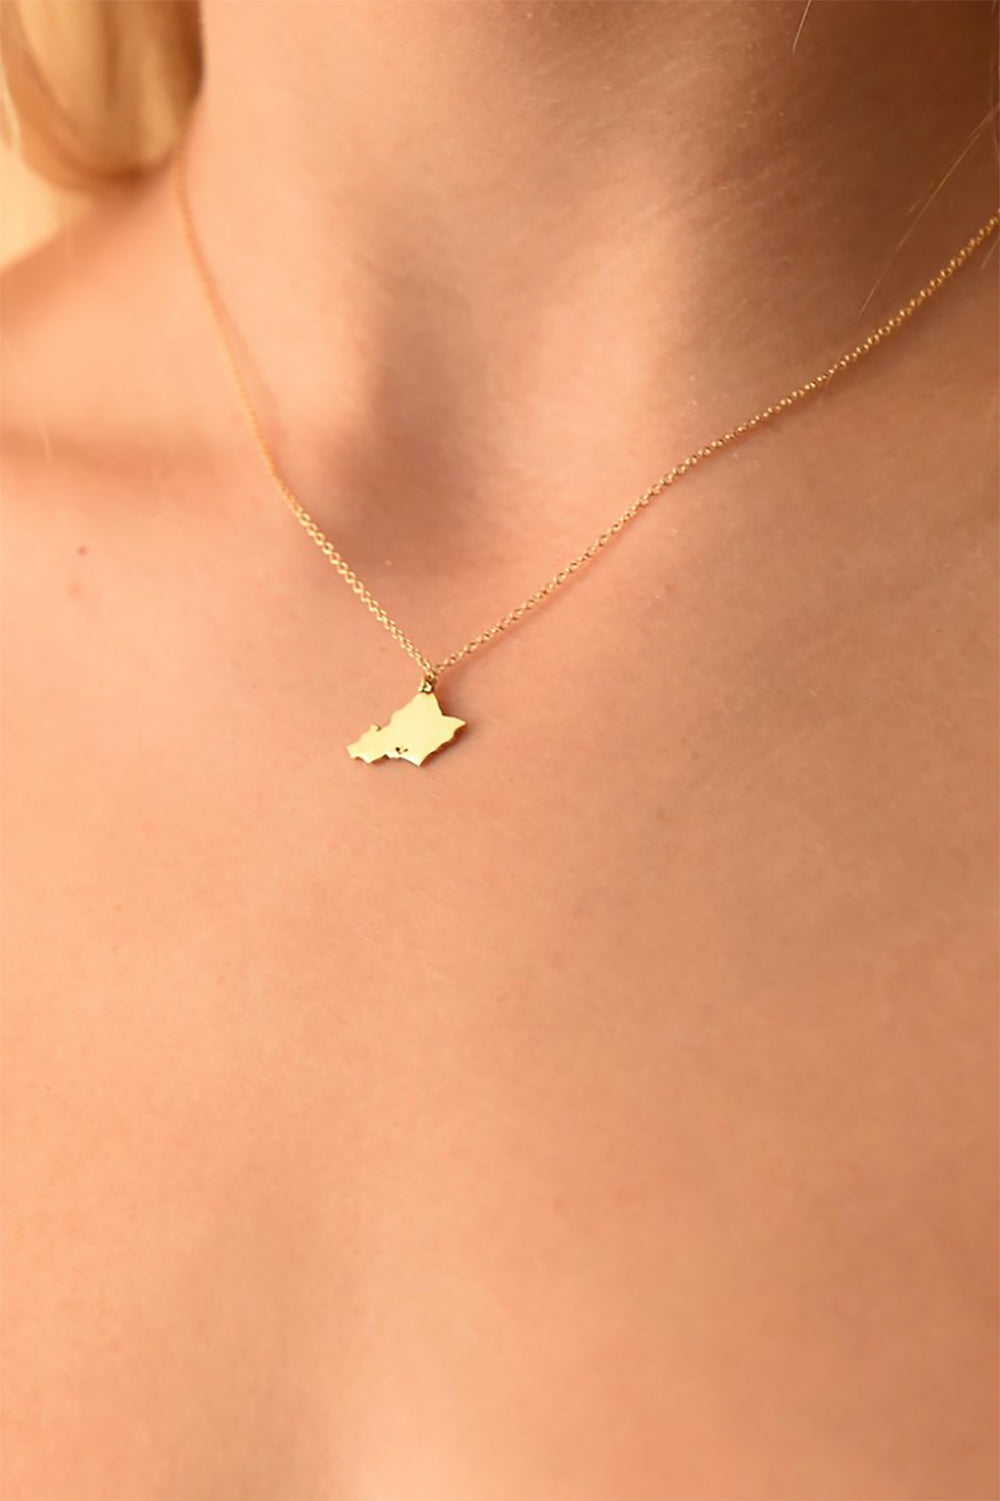 BYCHARI Oahu Necklace in Gold Fill